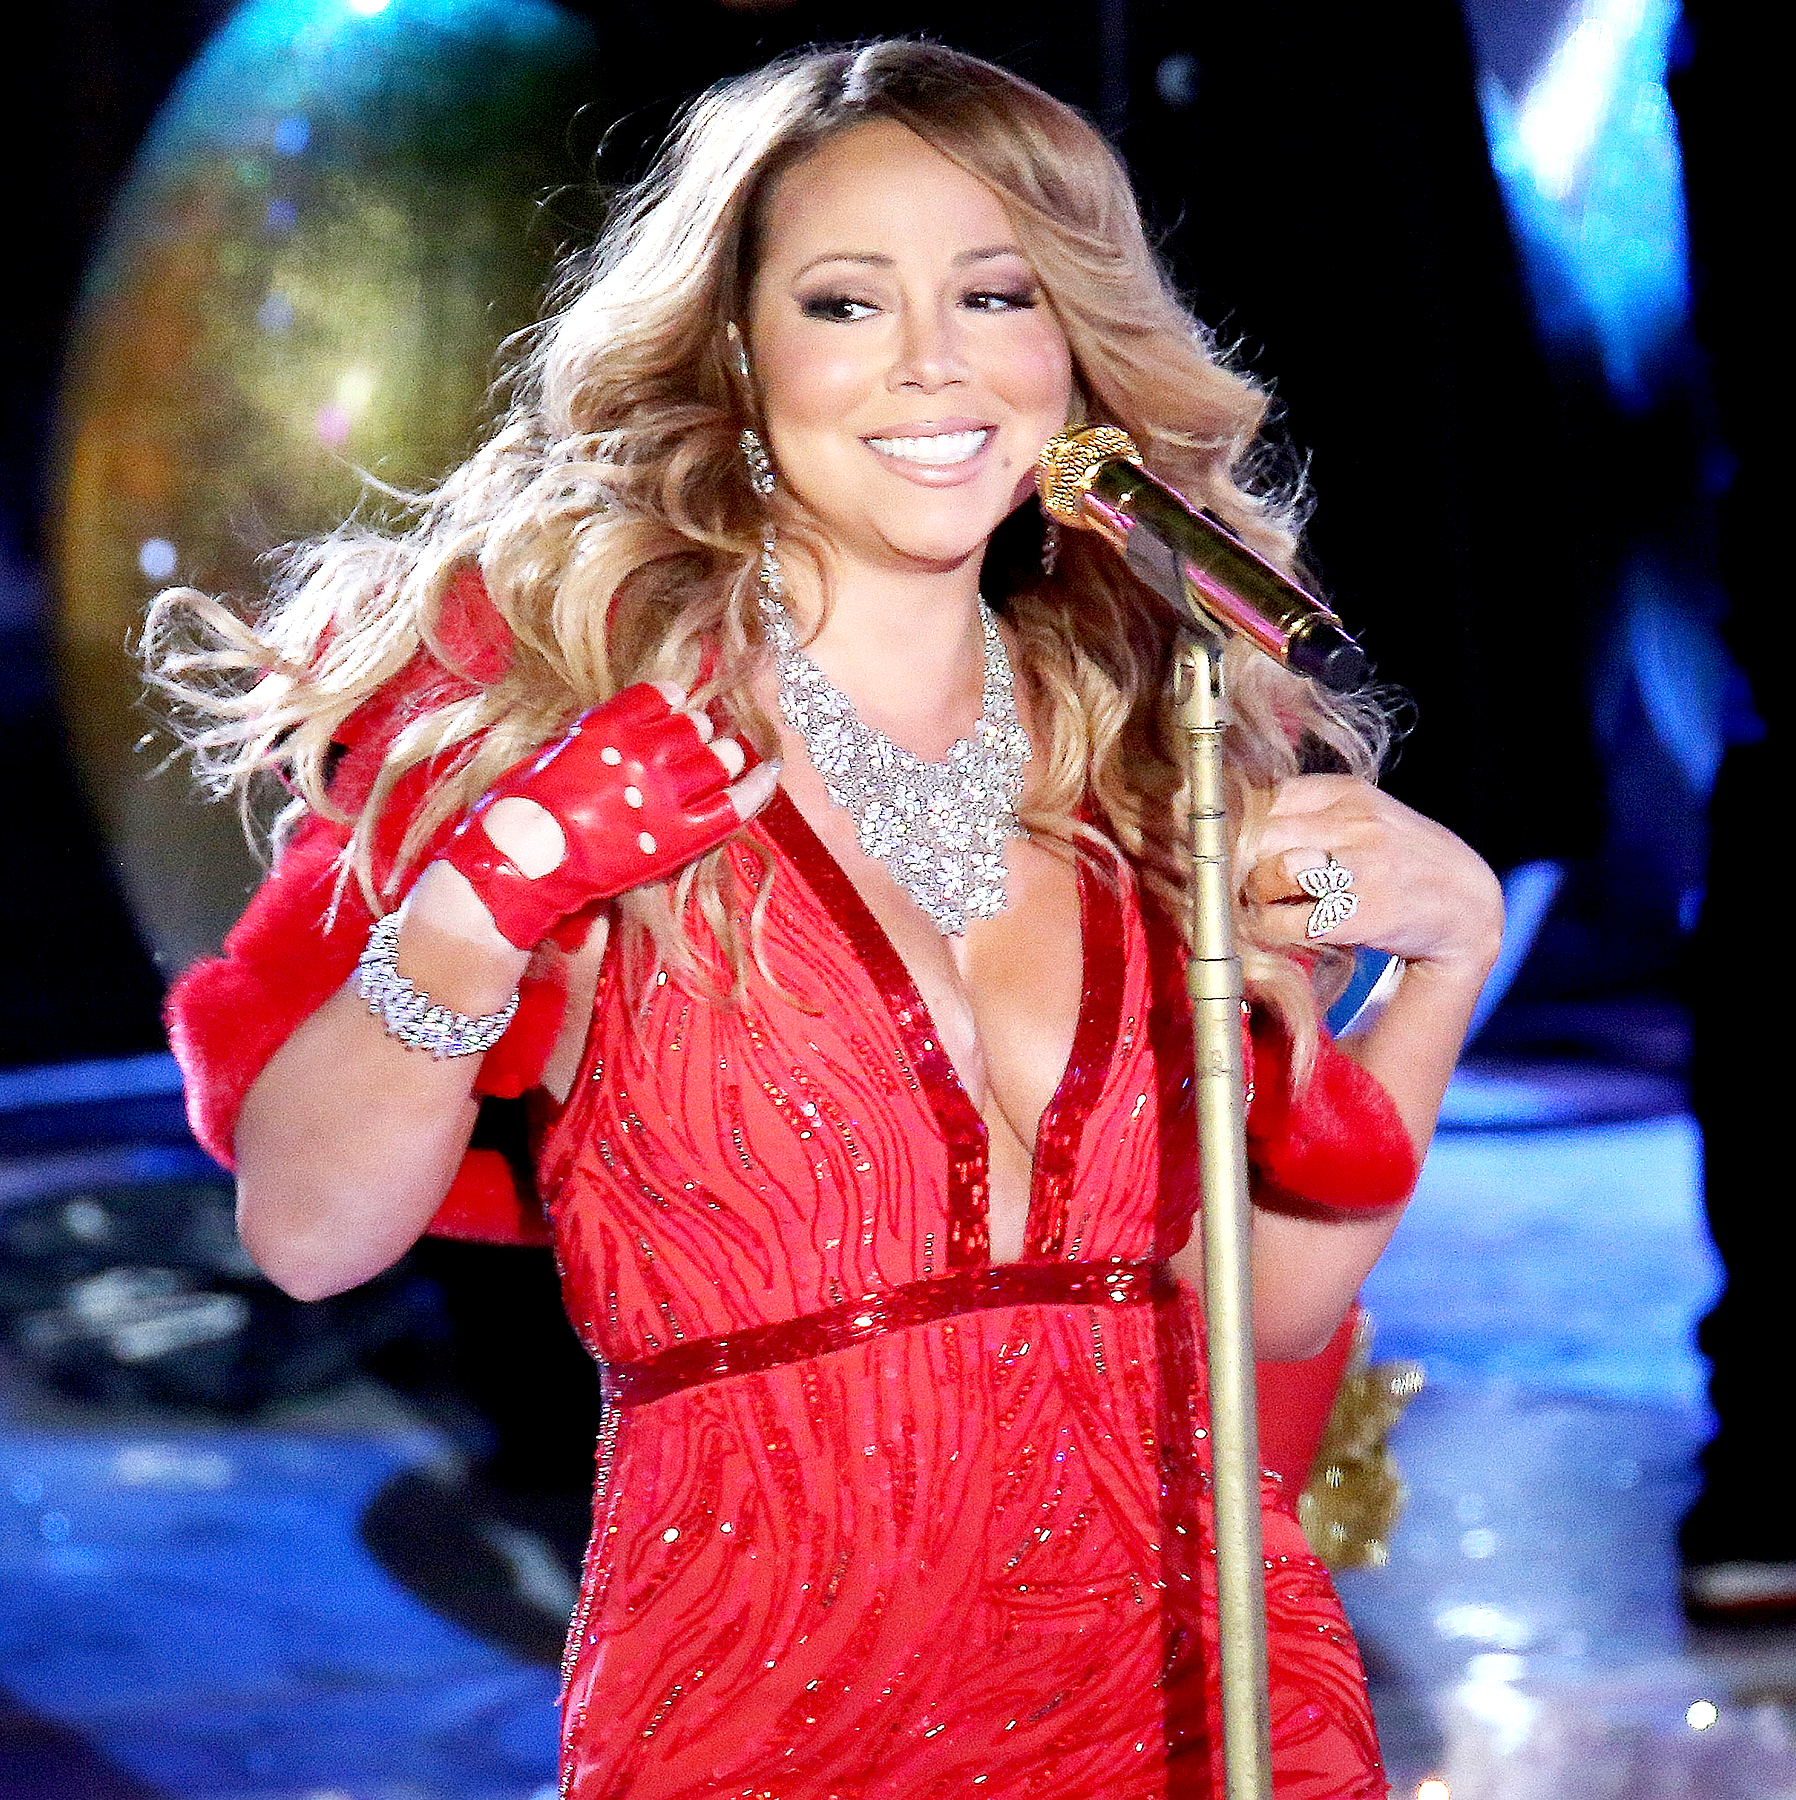 Mariah Carey performs at the 82nd Annual Rockefeller Center Christmas Tree Lighting on December 3  sc 1 st  Us Weekly & Mariah Carey Had Technical Issues at 2014 Tree Lighting Too